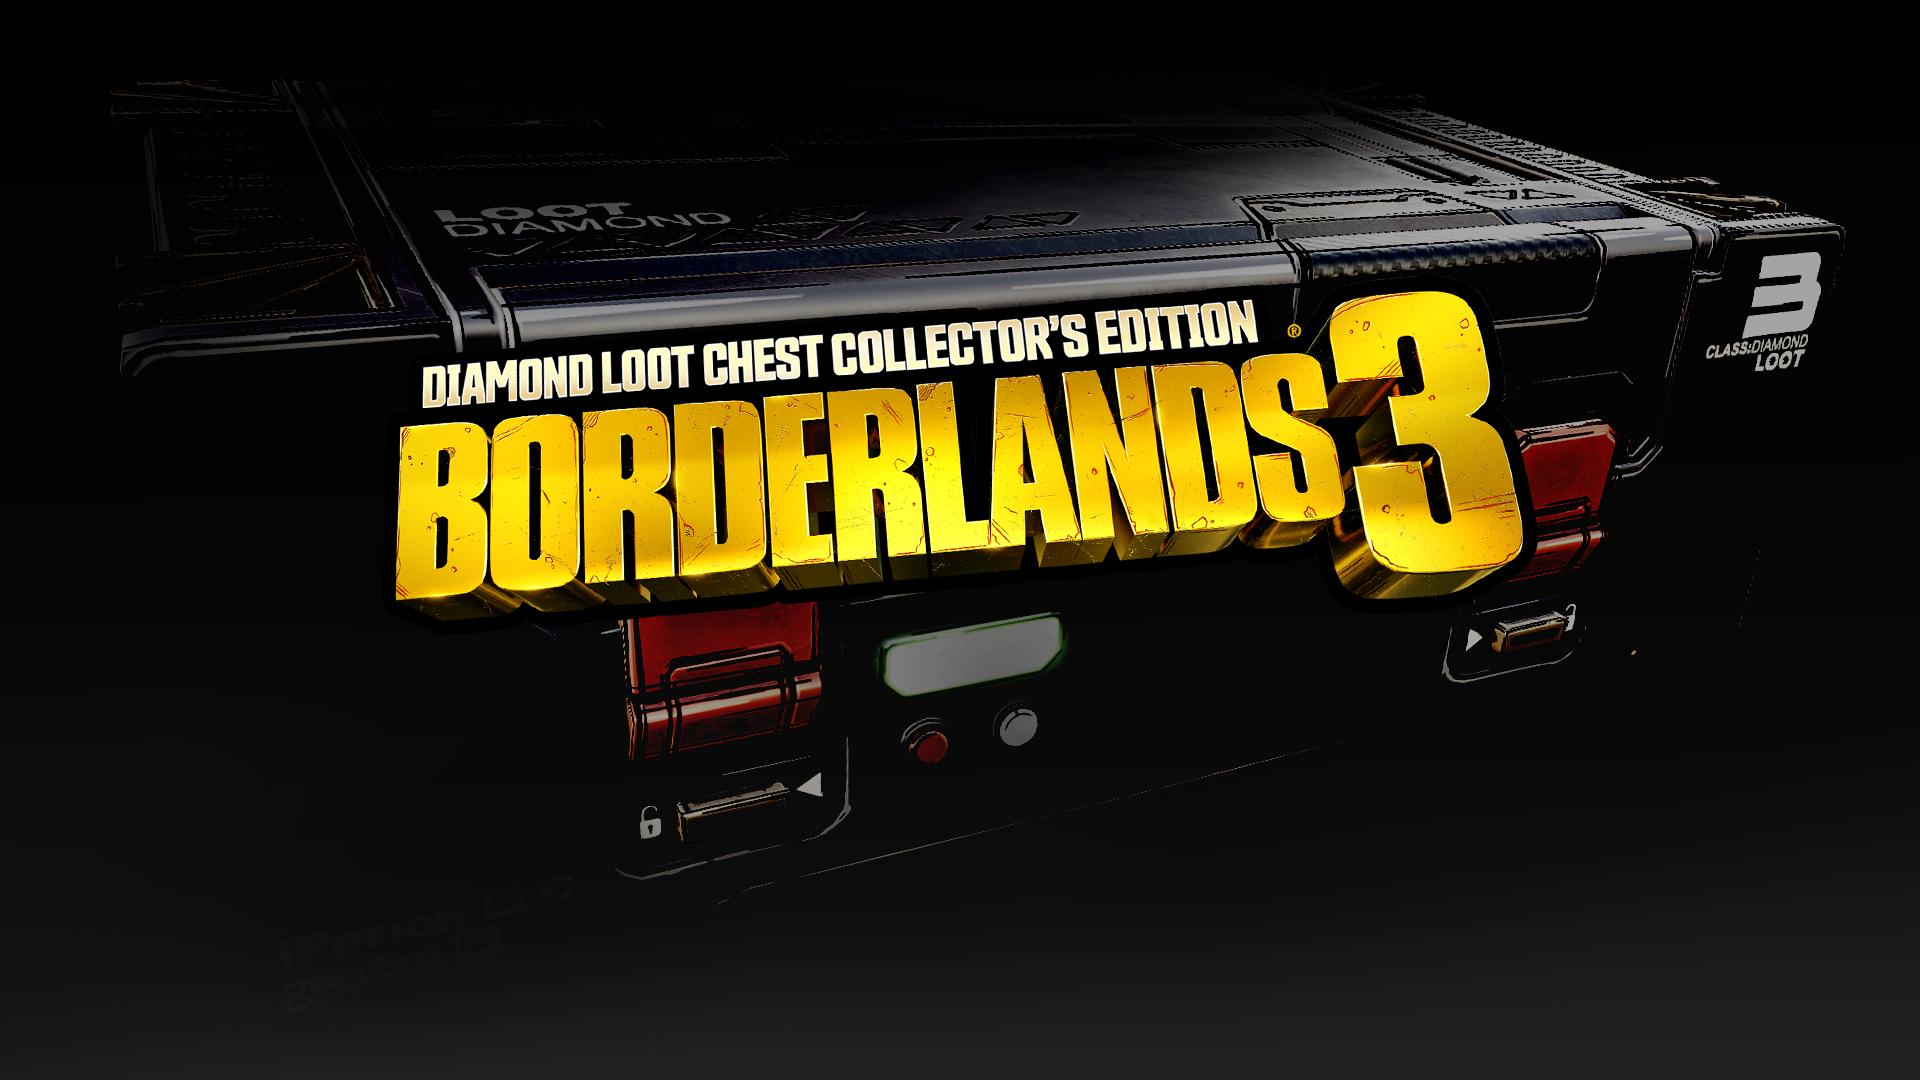 Borderlands Game Of The Year Edition Is Out Now On PS4, Xbox One, And PC